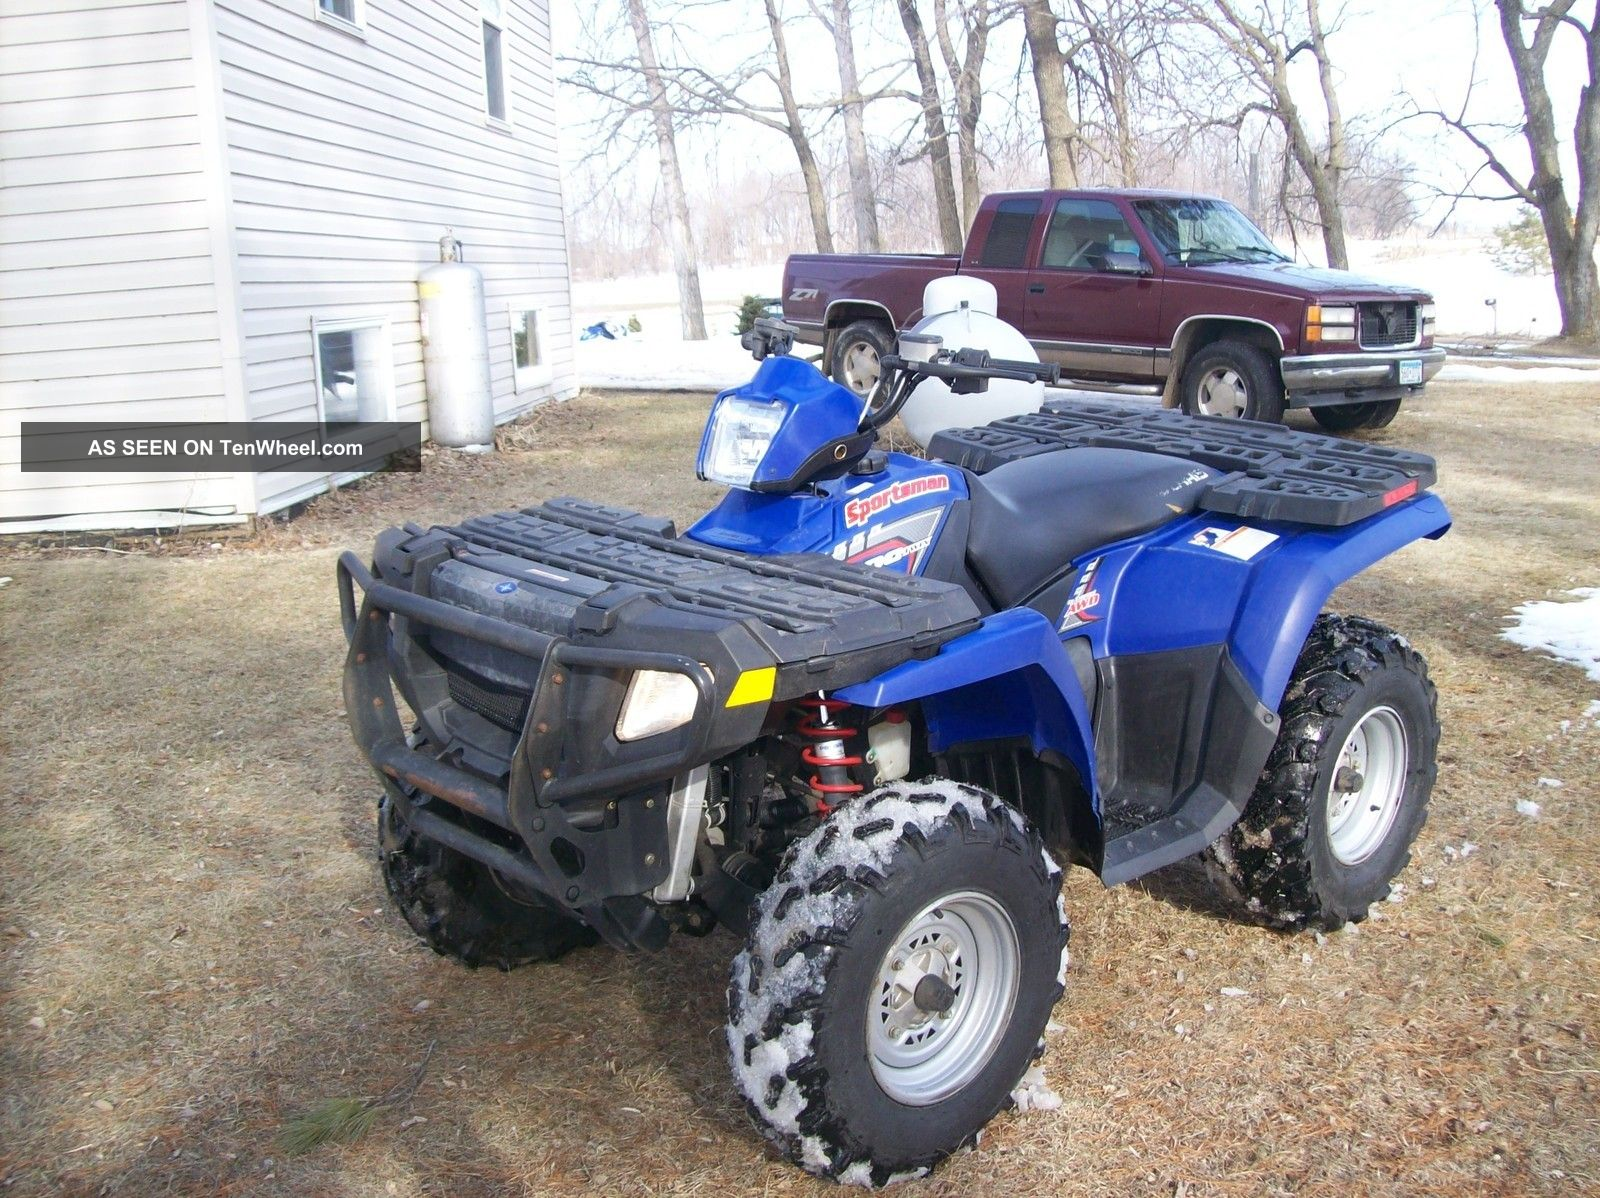 2005 polaris sportsman 400 manual